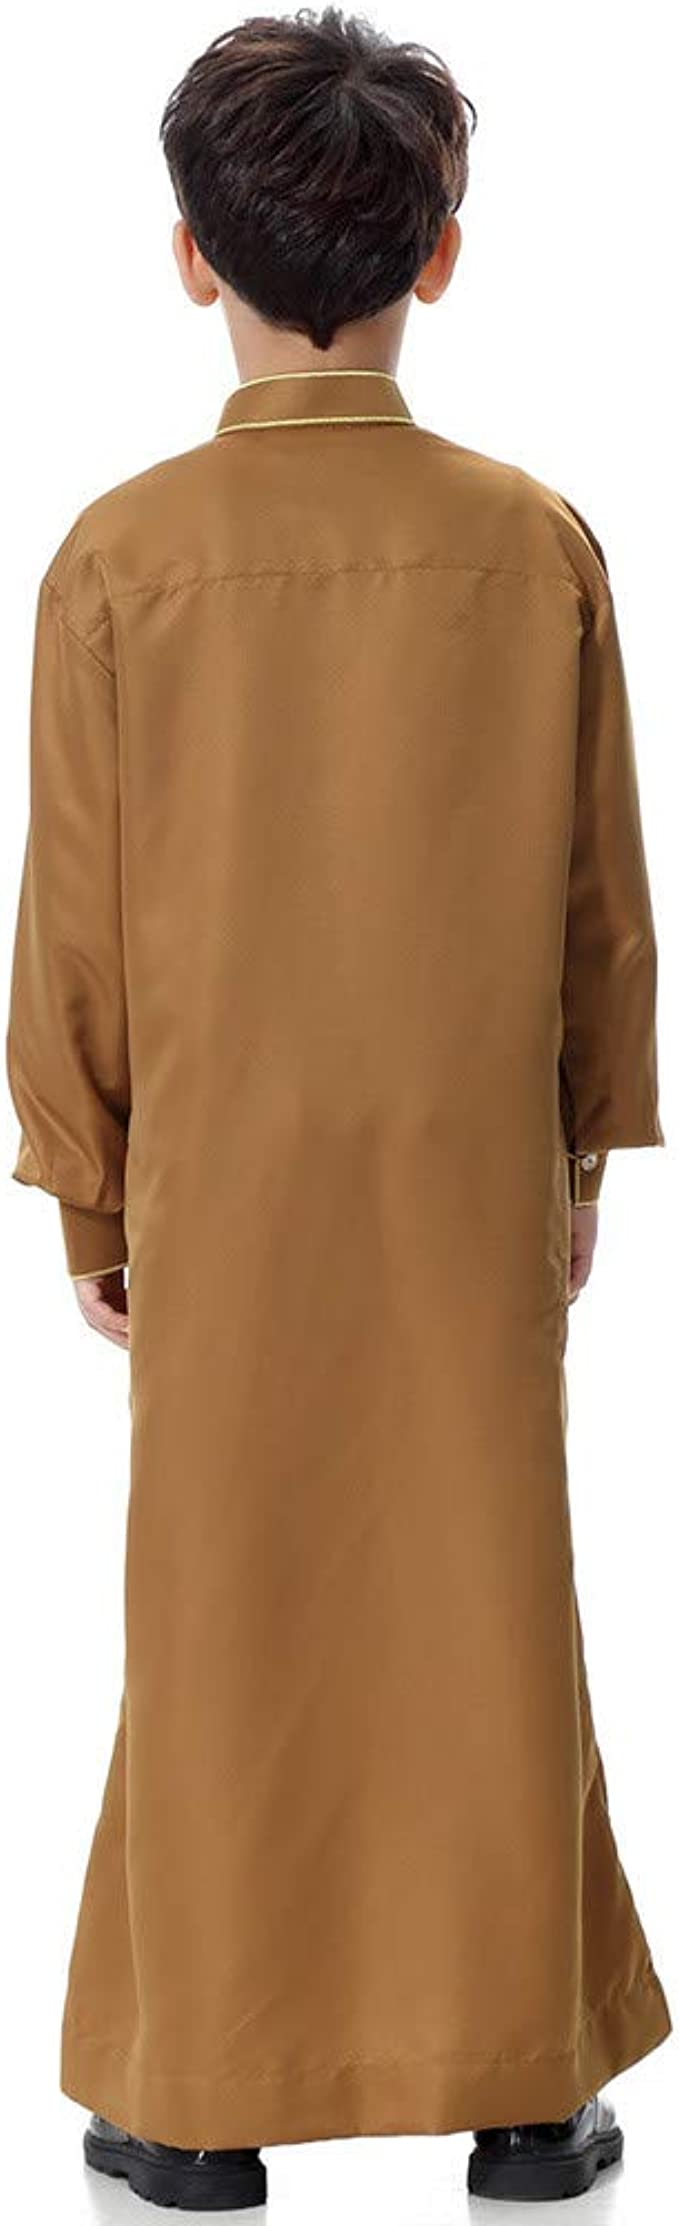 Wofupowga Mens Long-Sleeve Ethnic Style Muslim Abaya Pure Color Arab T-Shirts